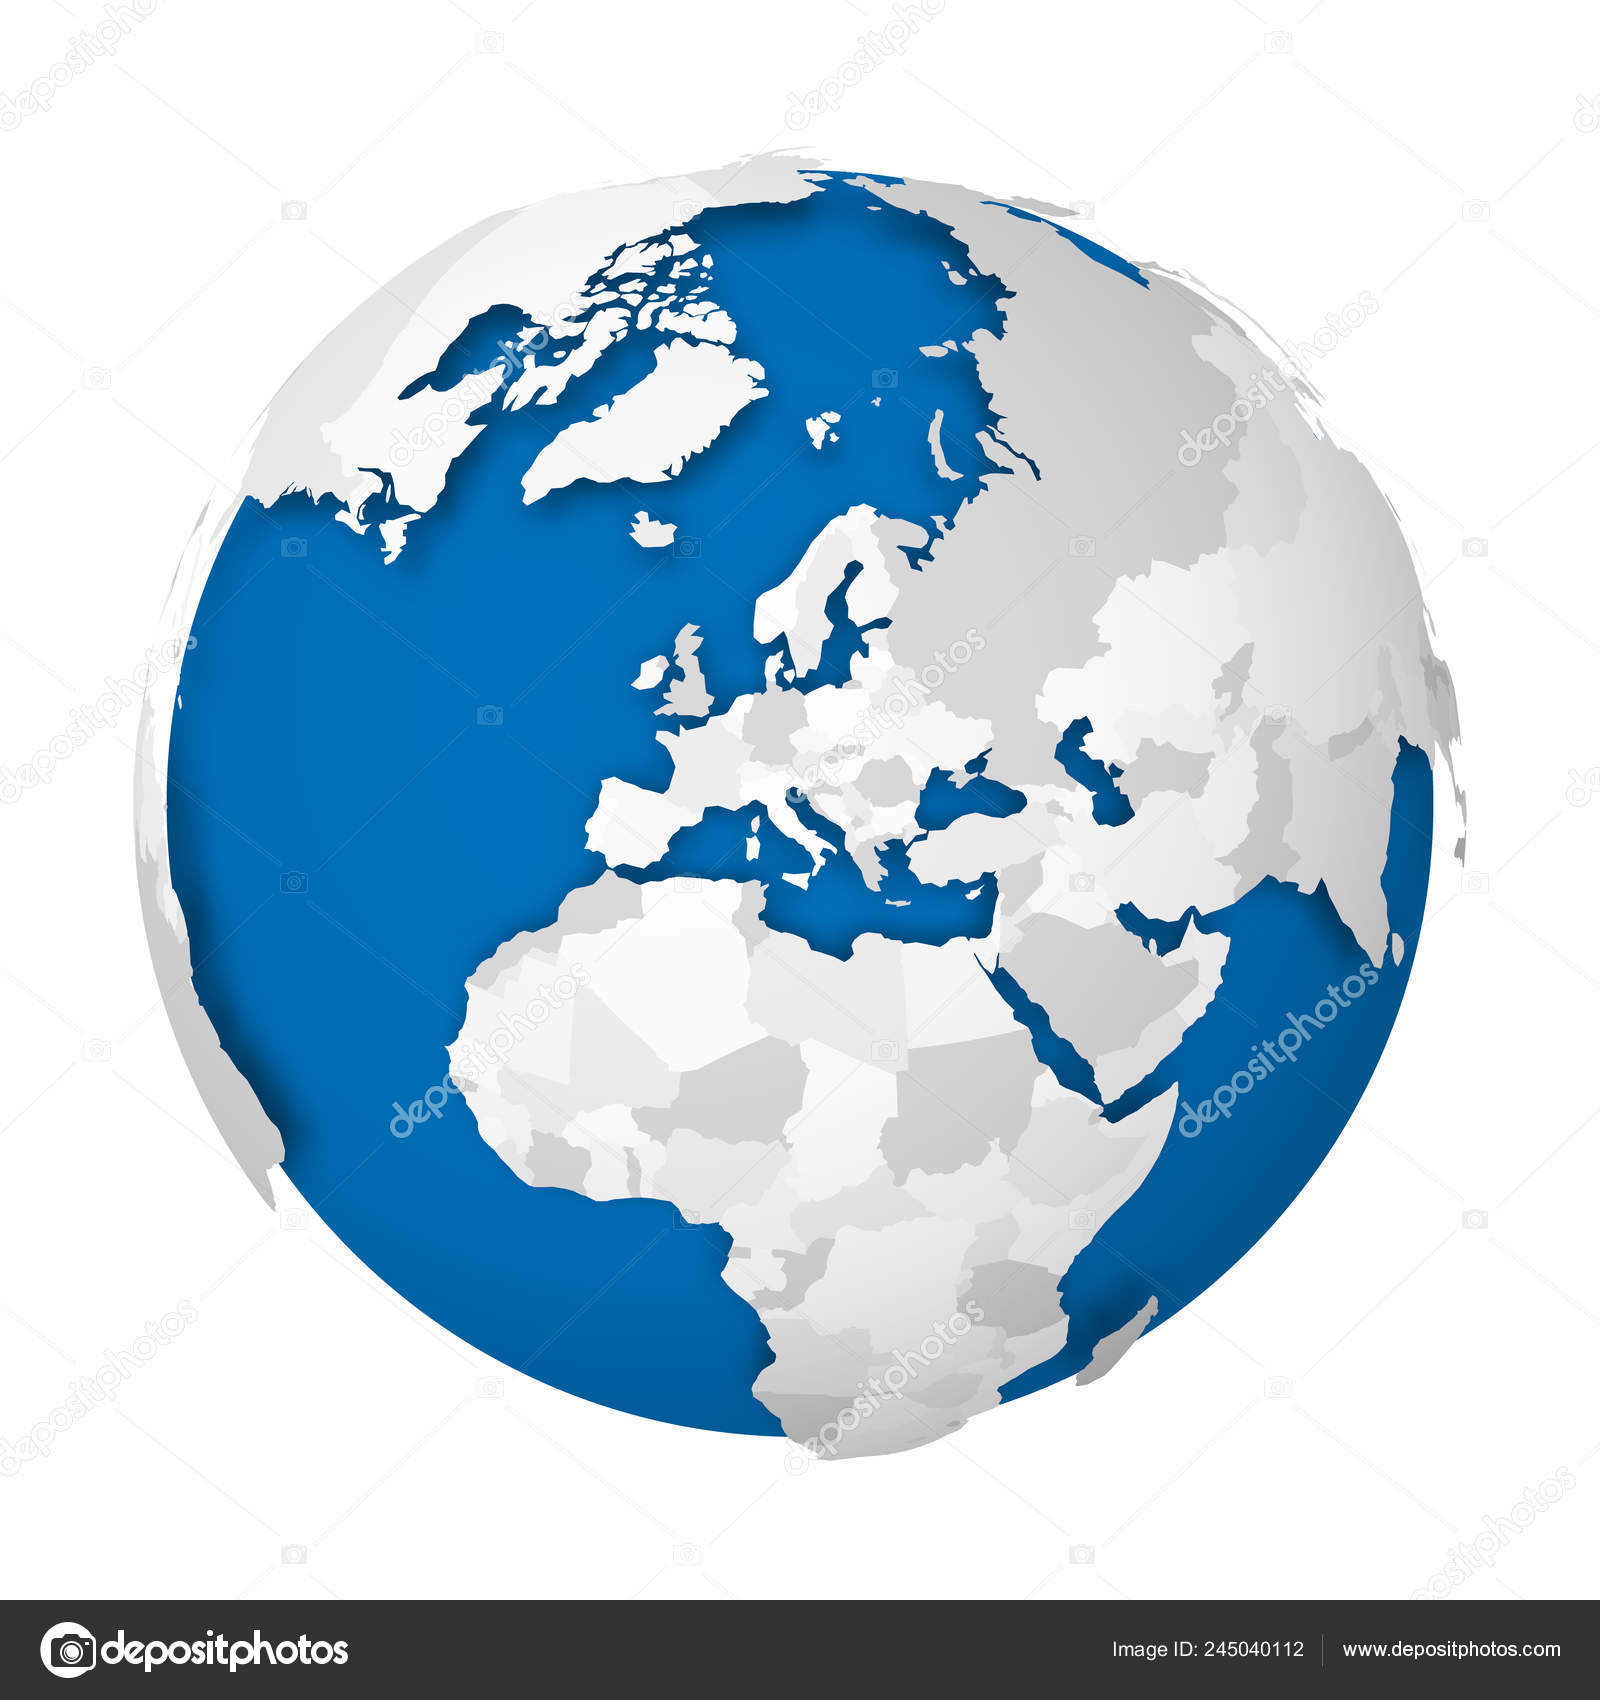 Earth globe. 3D world map with grey political map of ... on globe map world, globe map italy, globe map austria, globe map philippines, globe map india, globe map norway, globe map asia, globe map europe, globe map states, globe map art, globe map africa, globe map finland,